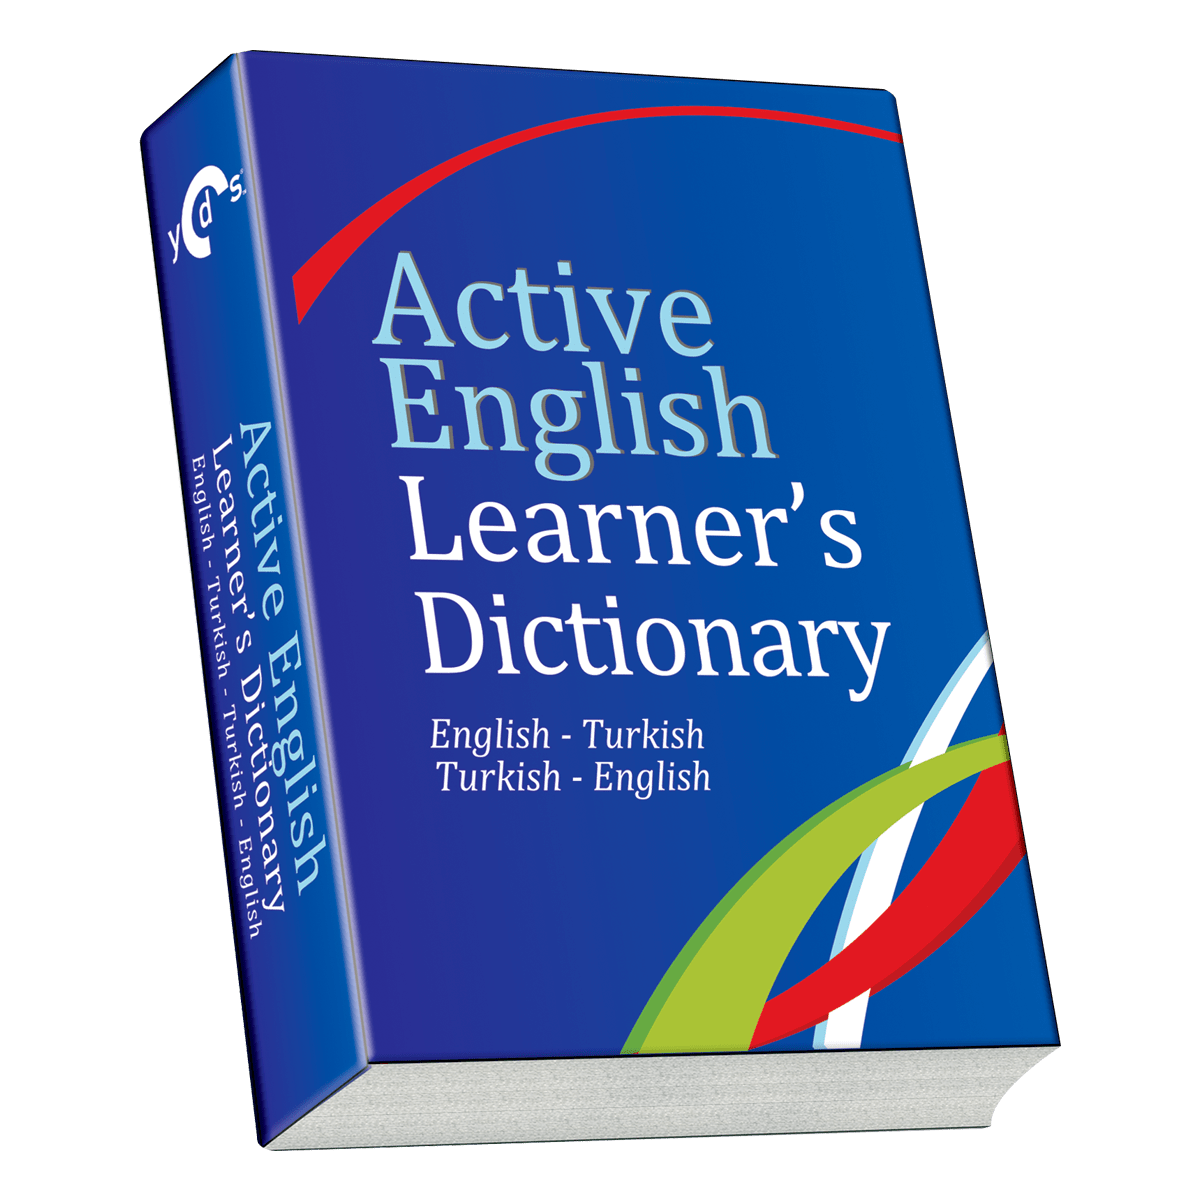 Active English Learner's Dictionary active english learner's dictionary Active English Learner's Dictionary active english learners min 1200x1200